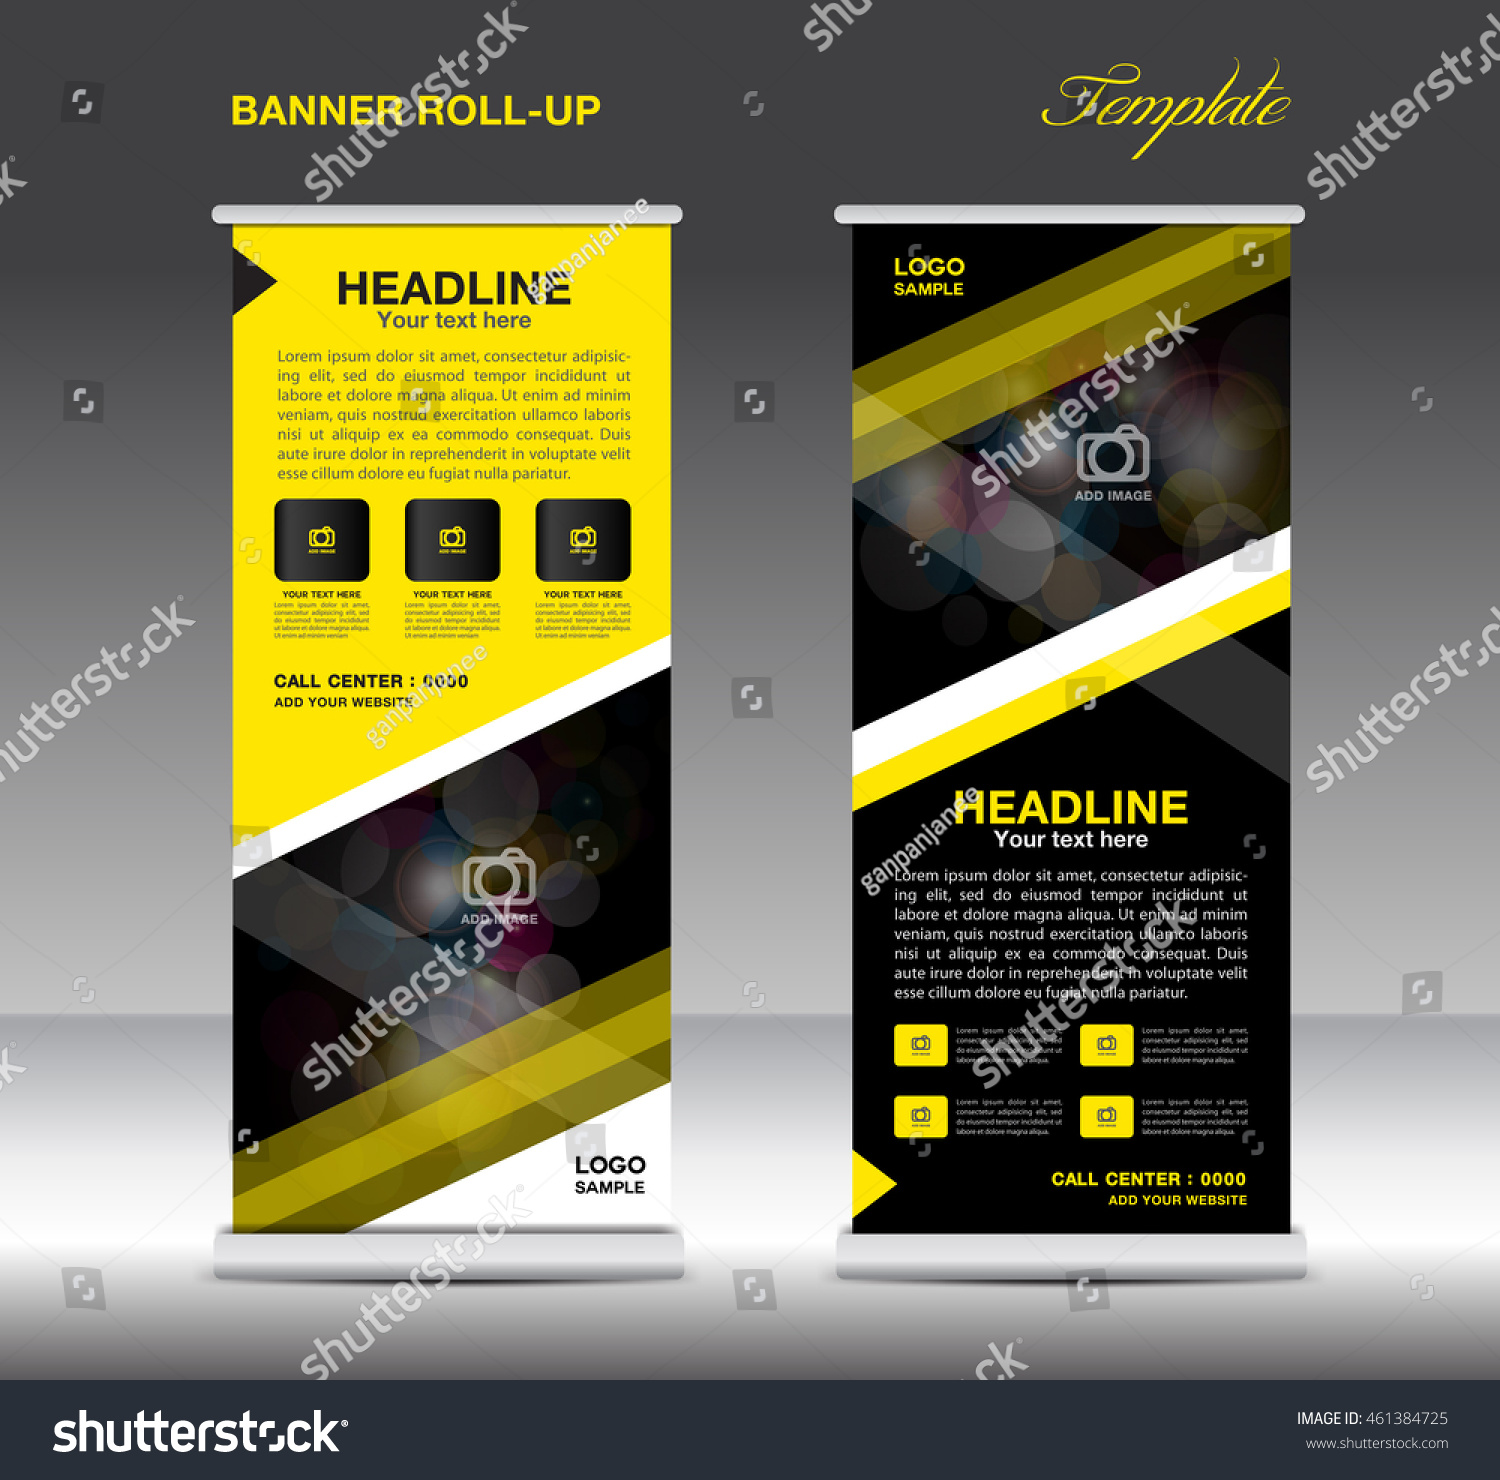 yellow and black roll up banner template vector standy design yellow and black roll up banner template vector standy design display advertisement flyer